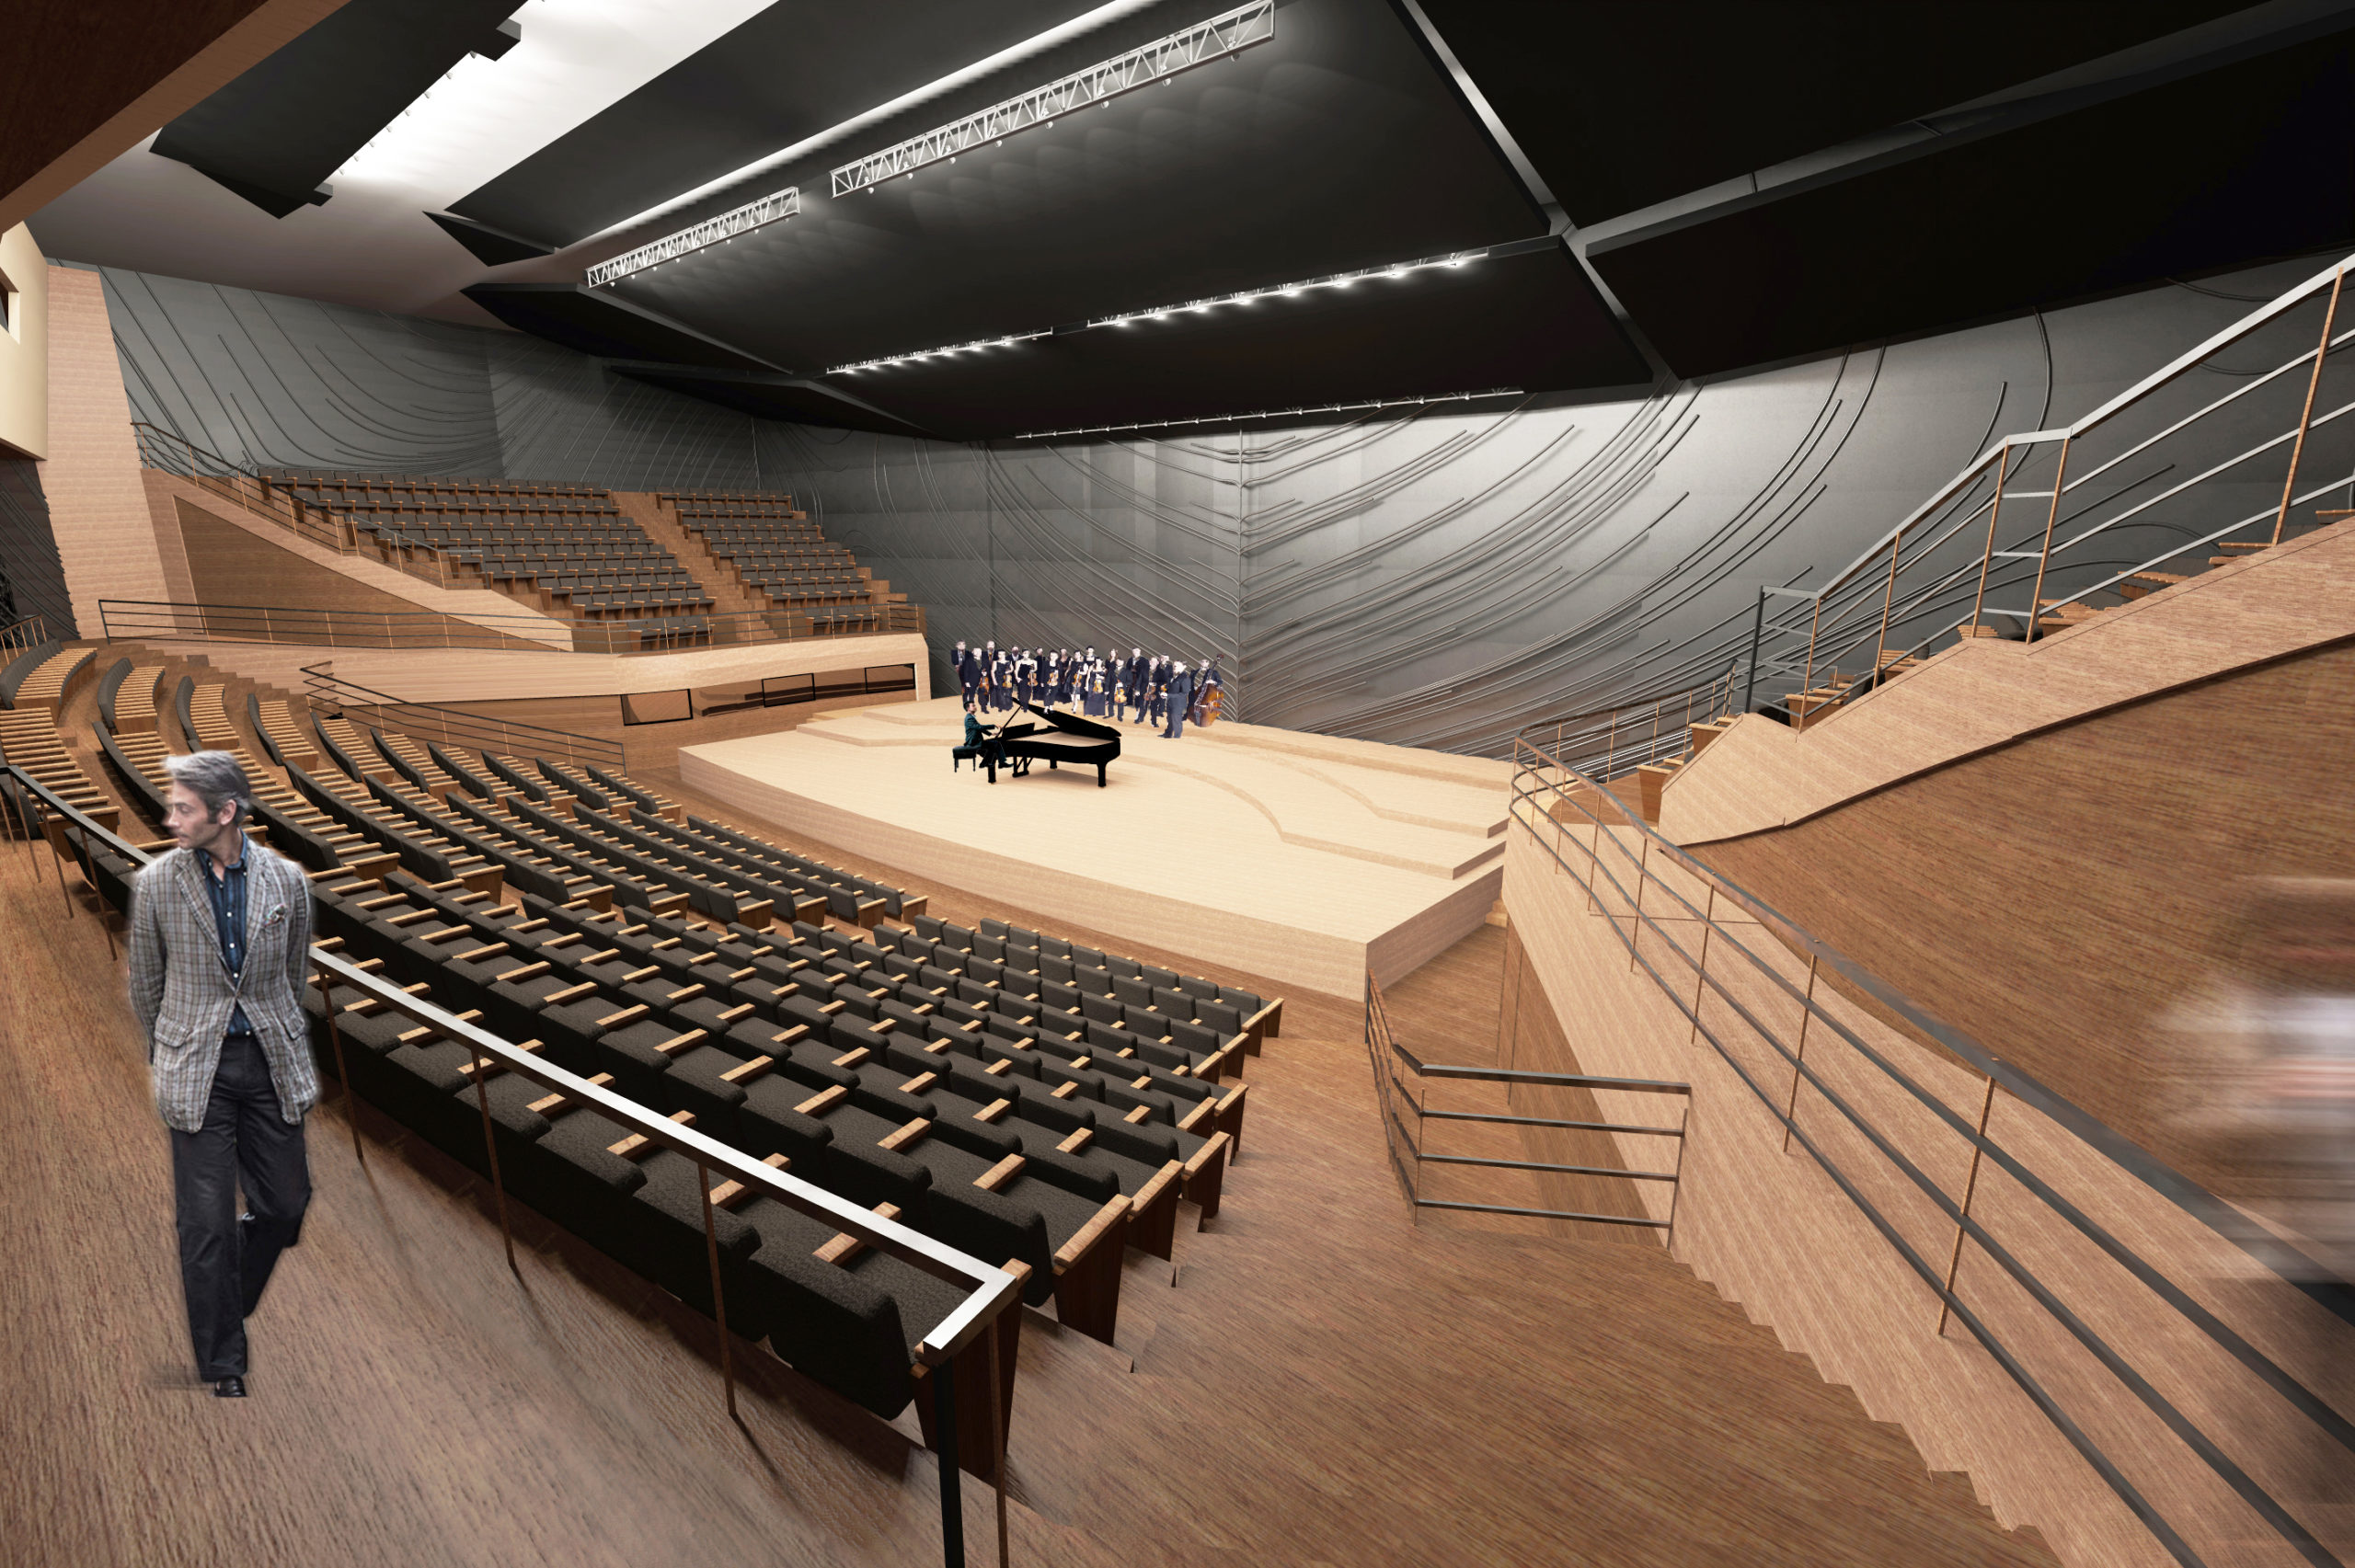 Chopin Music Center, concert hall, pianist with choir, view from an angle